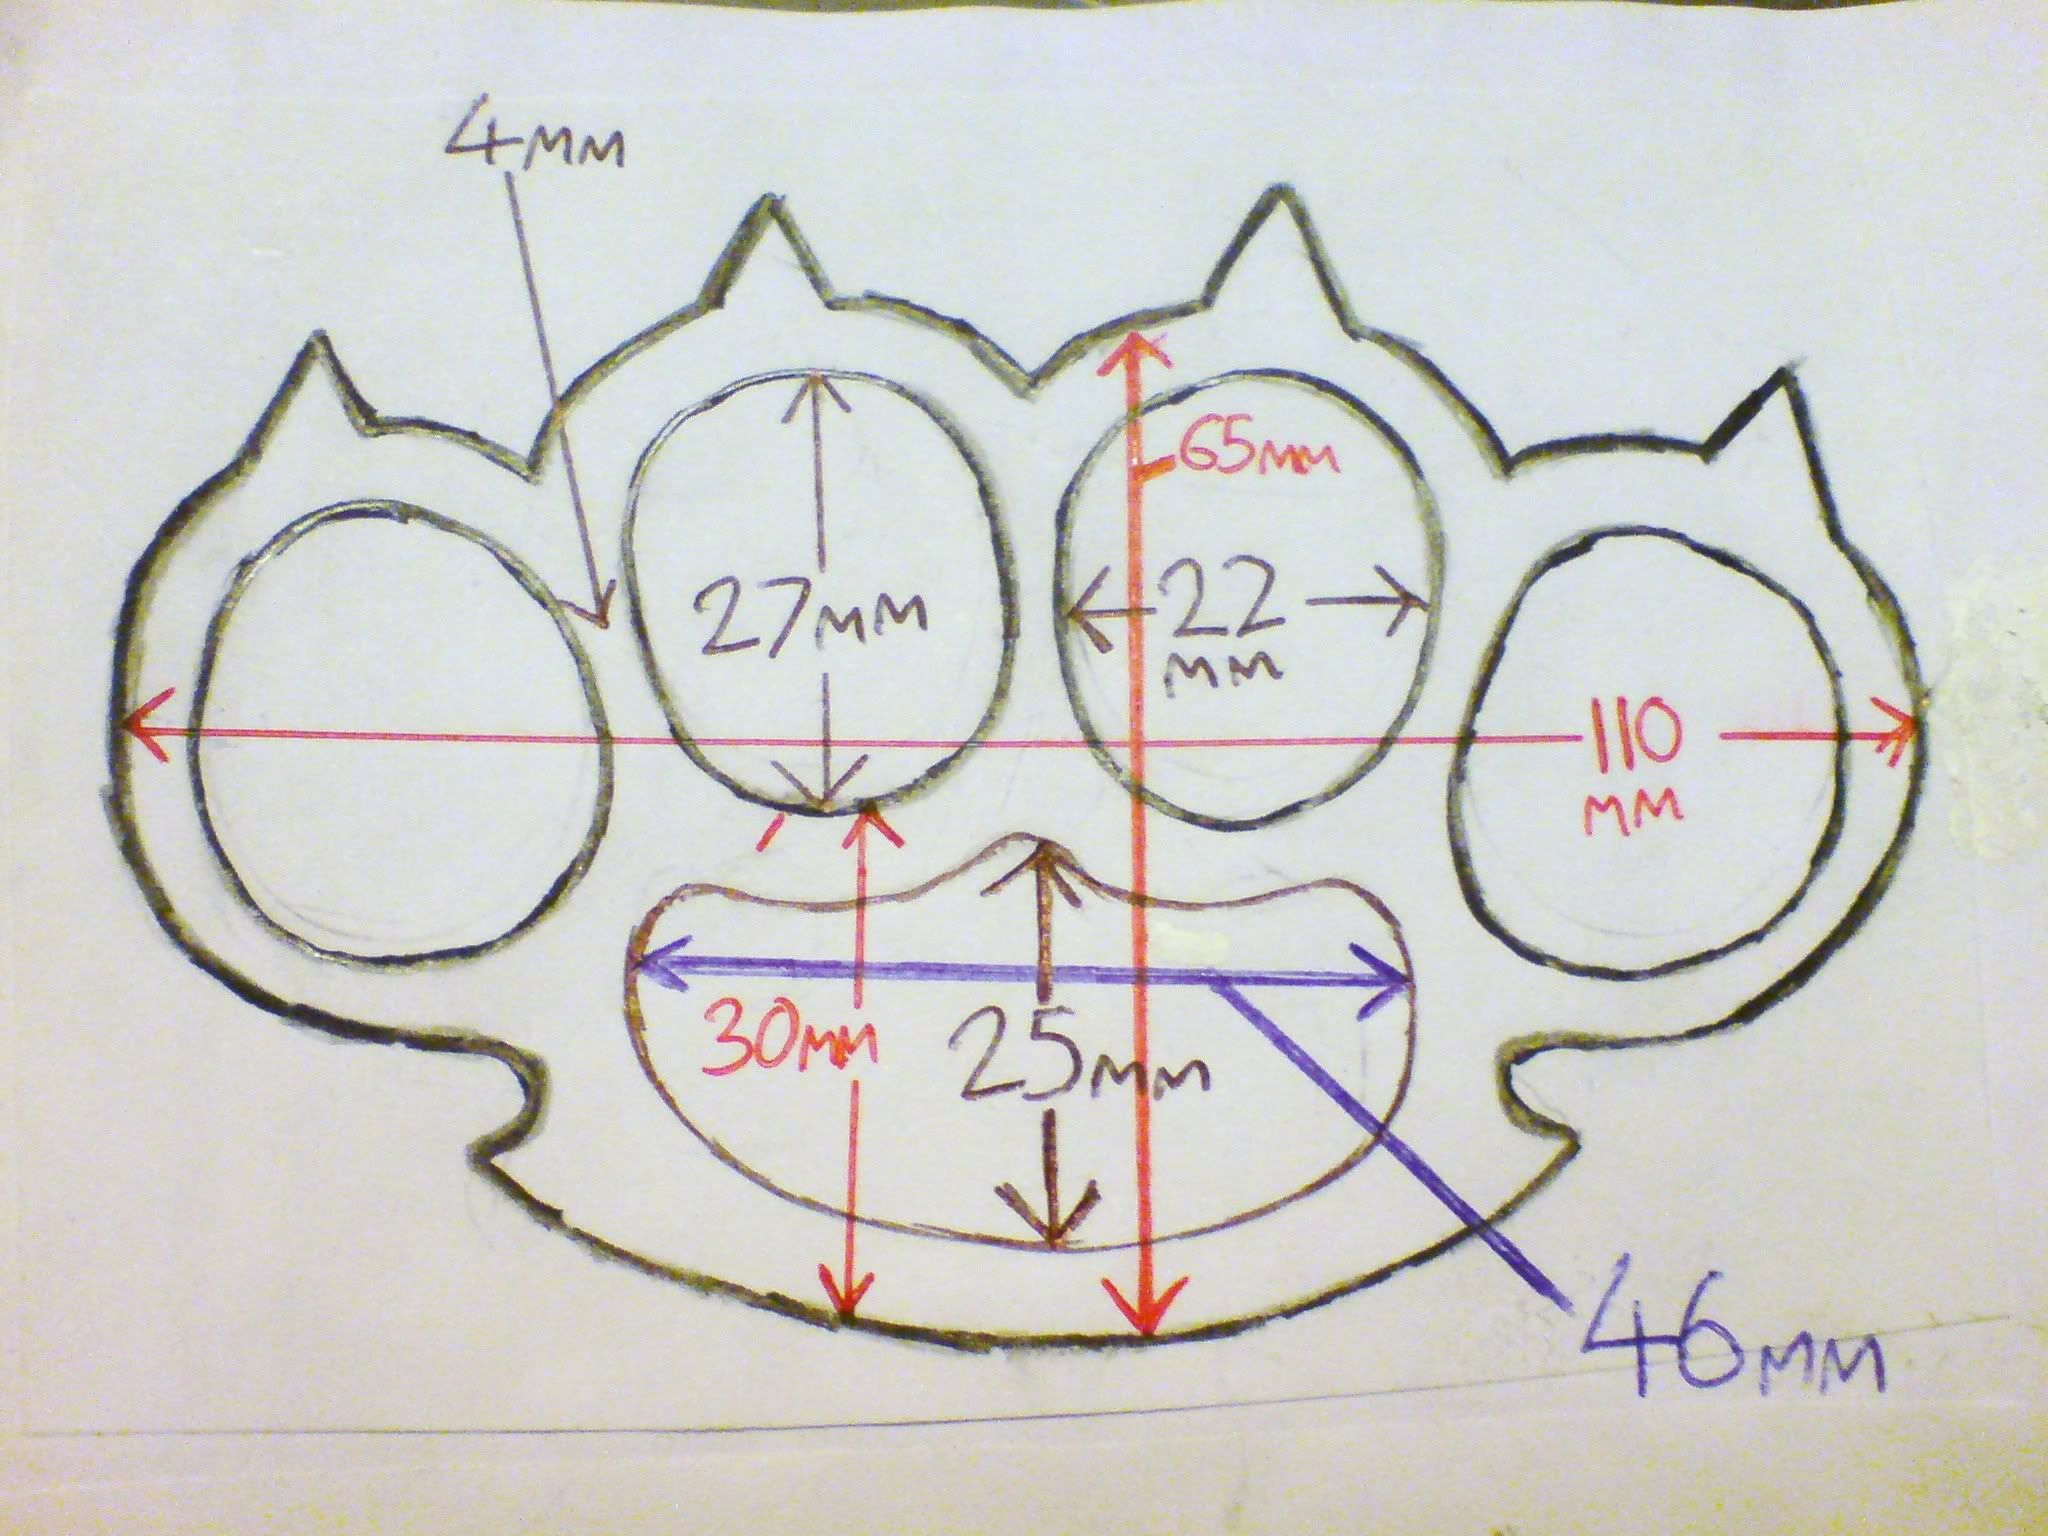 Brass Knuckles Diagram 1978 Honda Cb400 Wiring Pics For Knuckle Duster Template Knuckledusters Pinterest